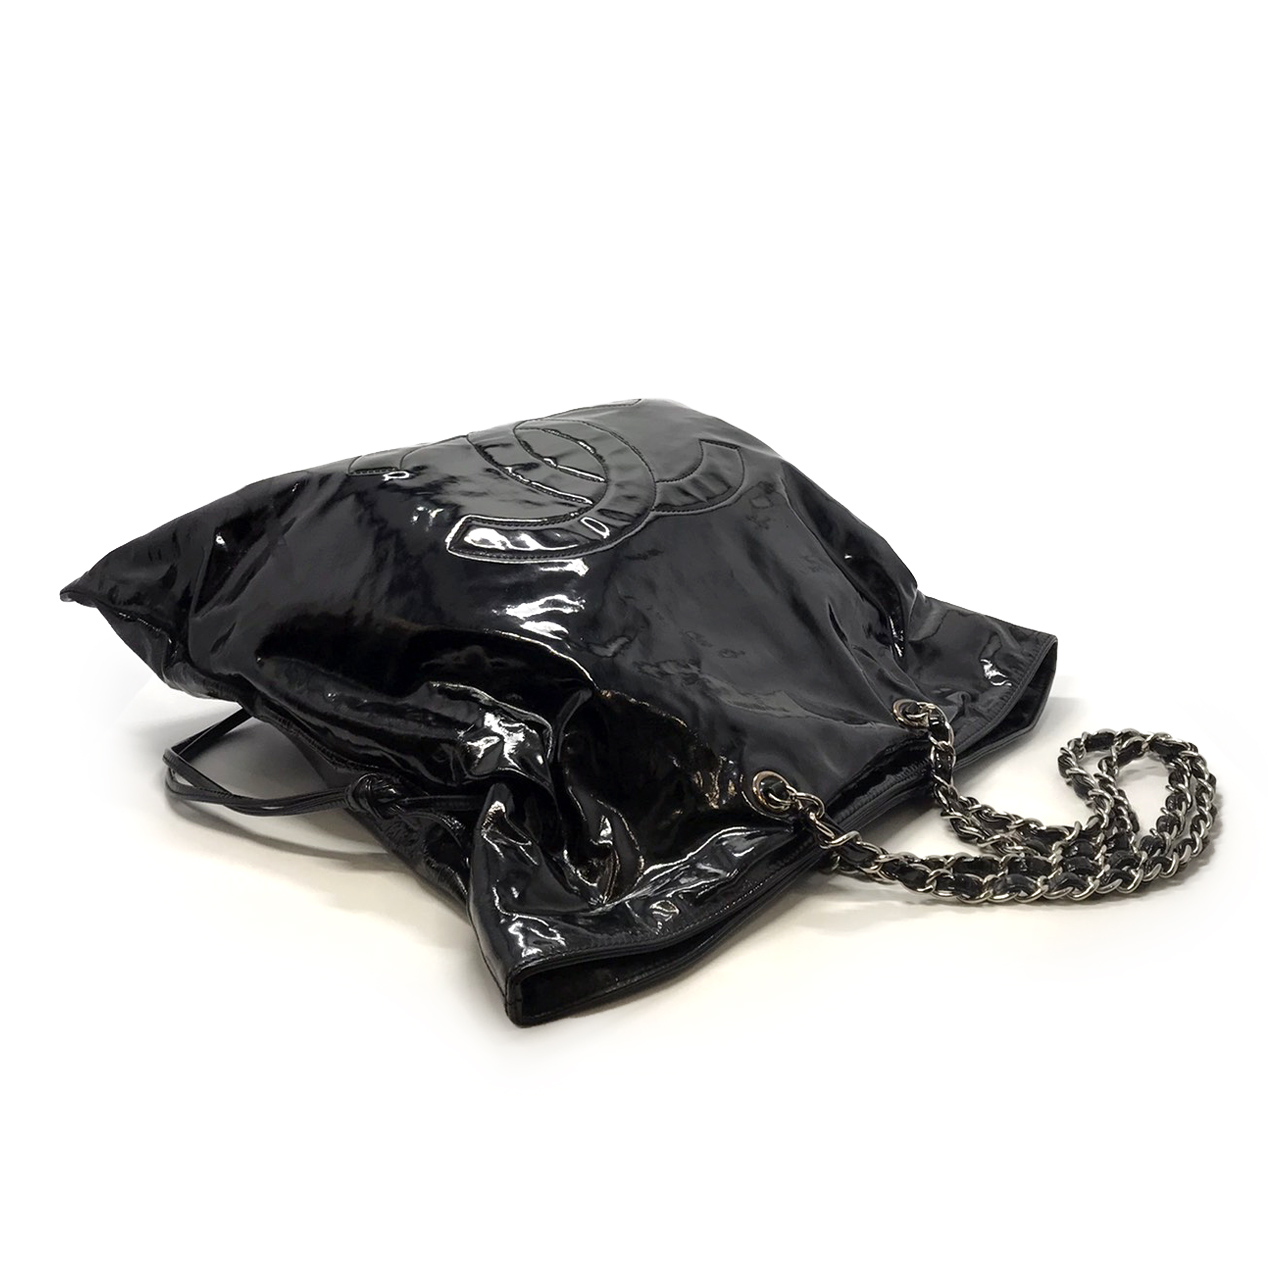 Used Chanel CC Shoulderbag in Black Patent Leather SHW